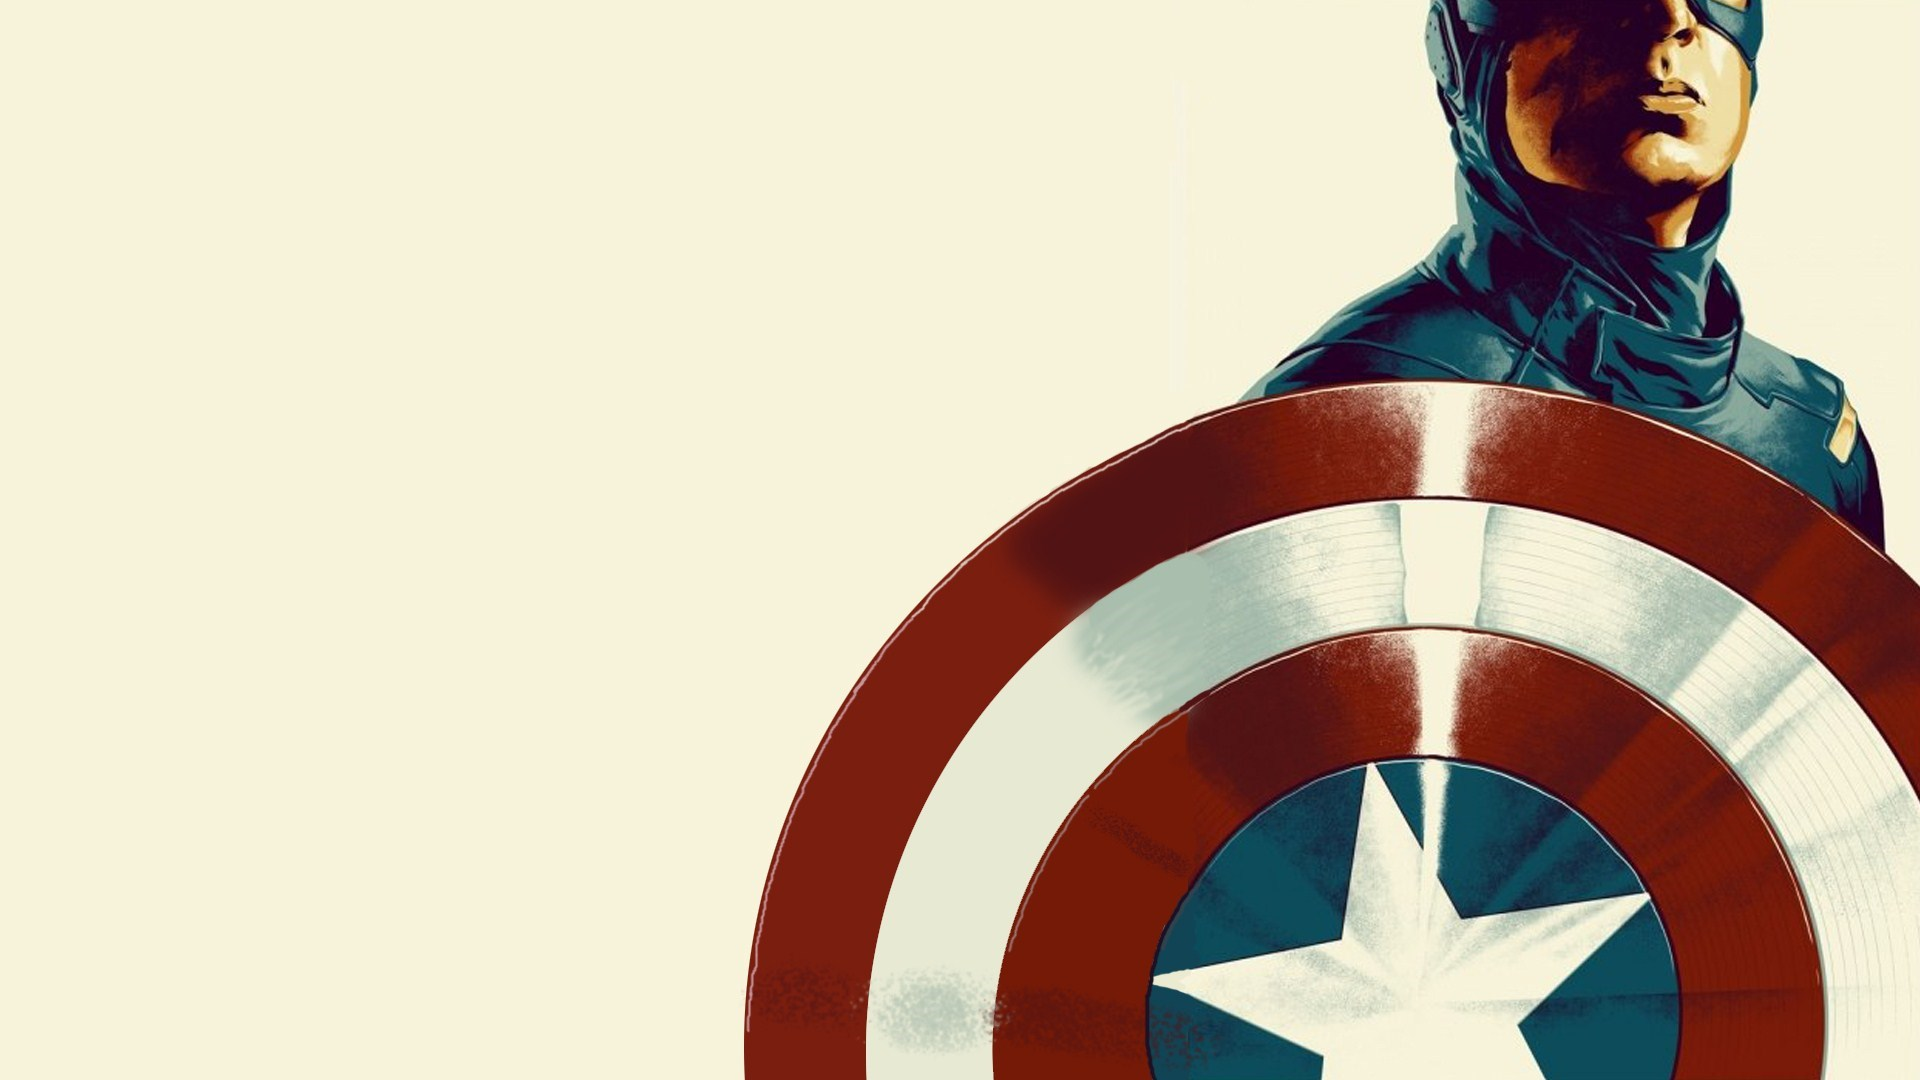 captain america wallpaper - photo #26